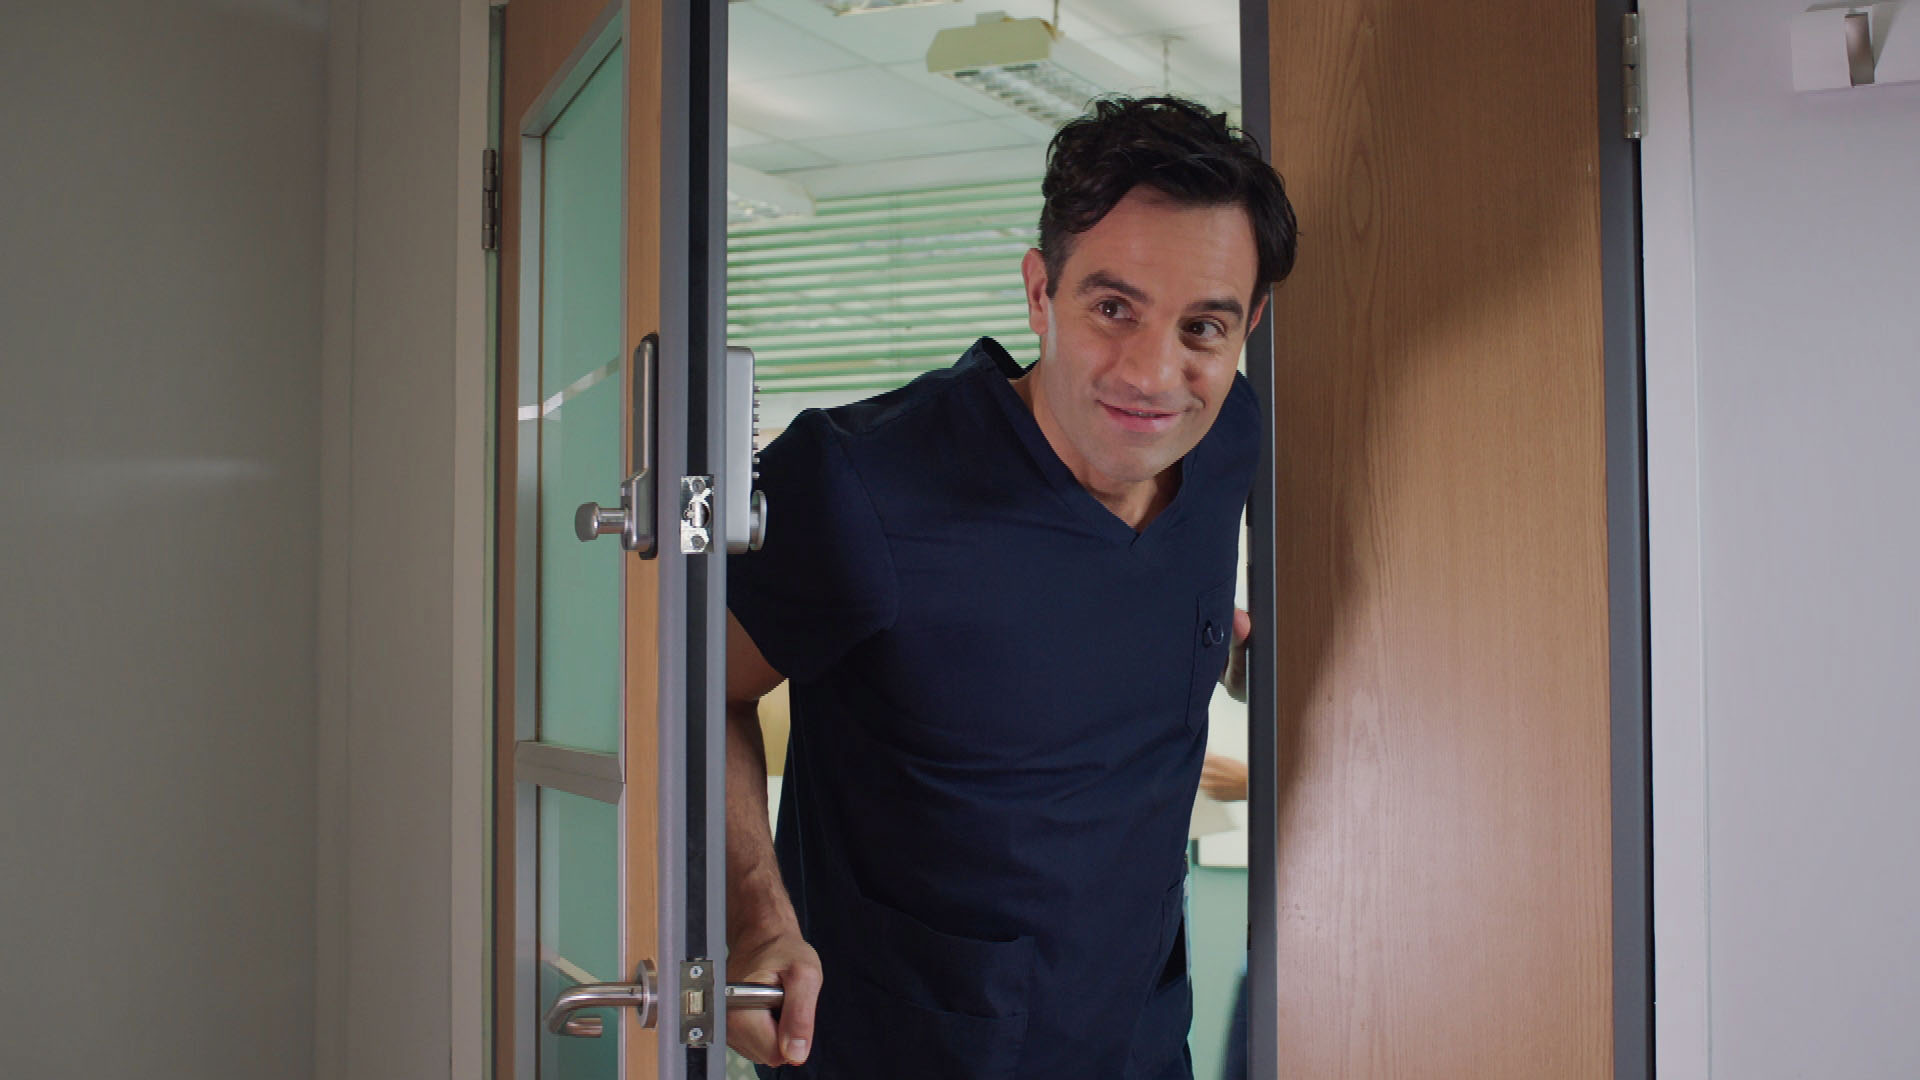 There's a double bill of Holby City this week!